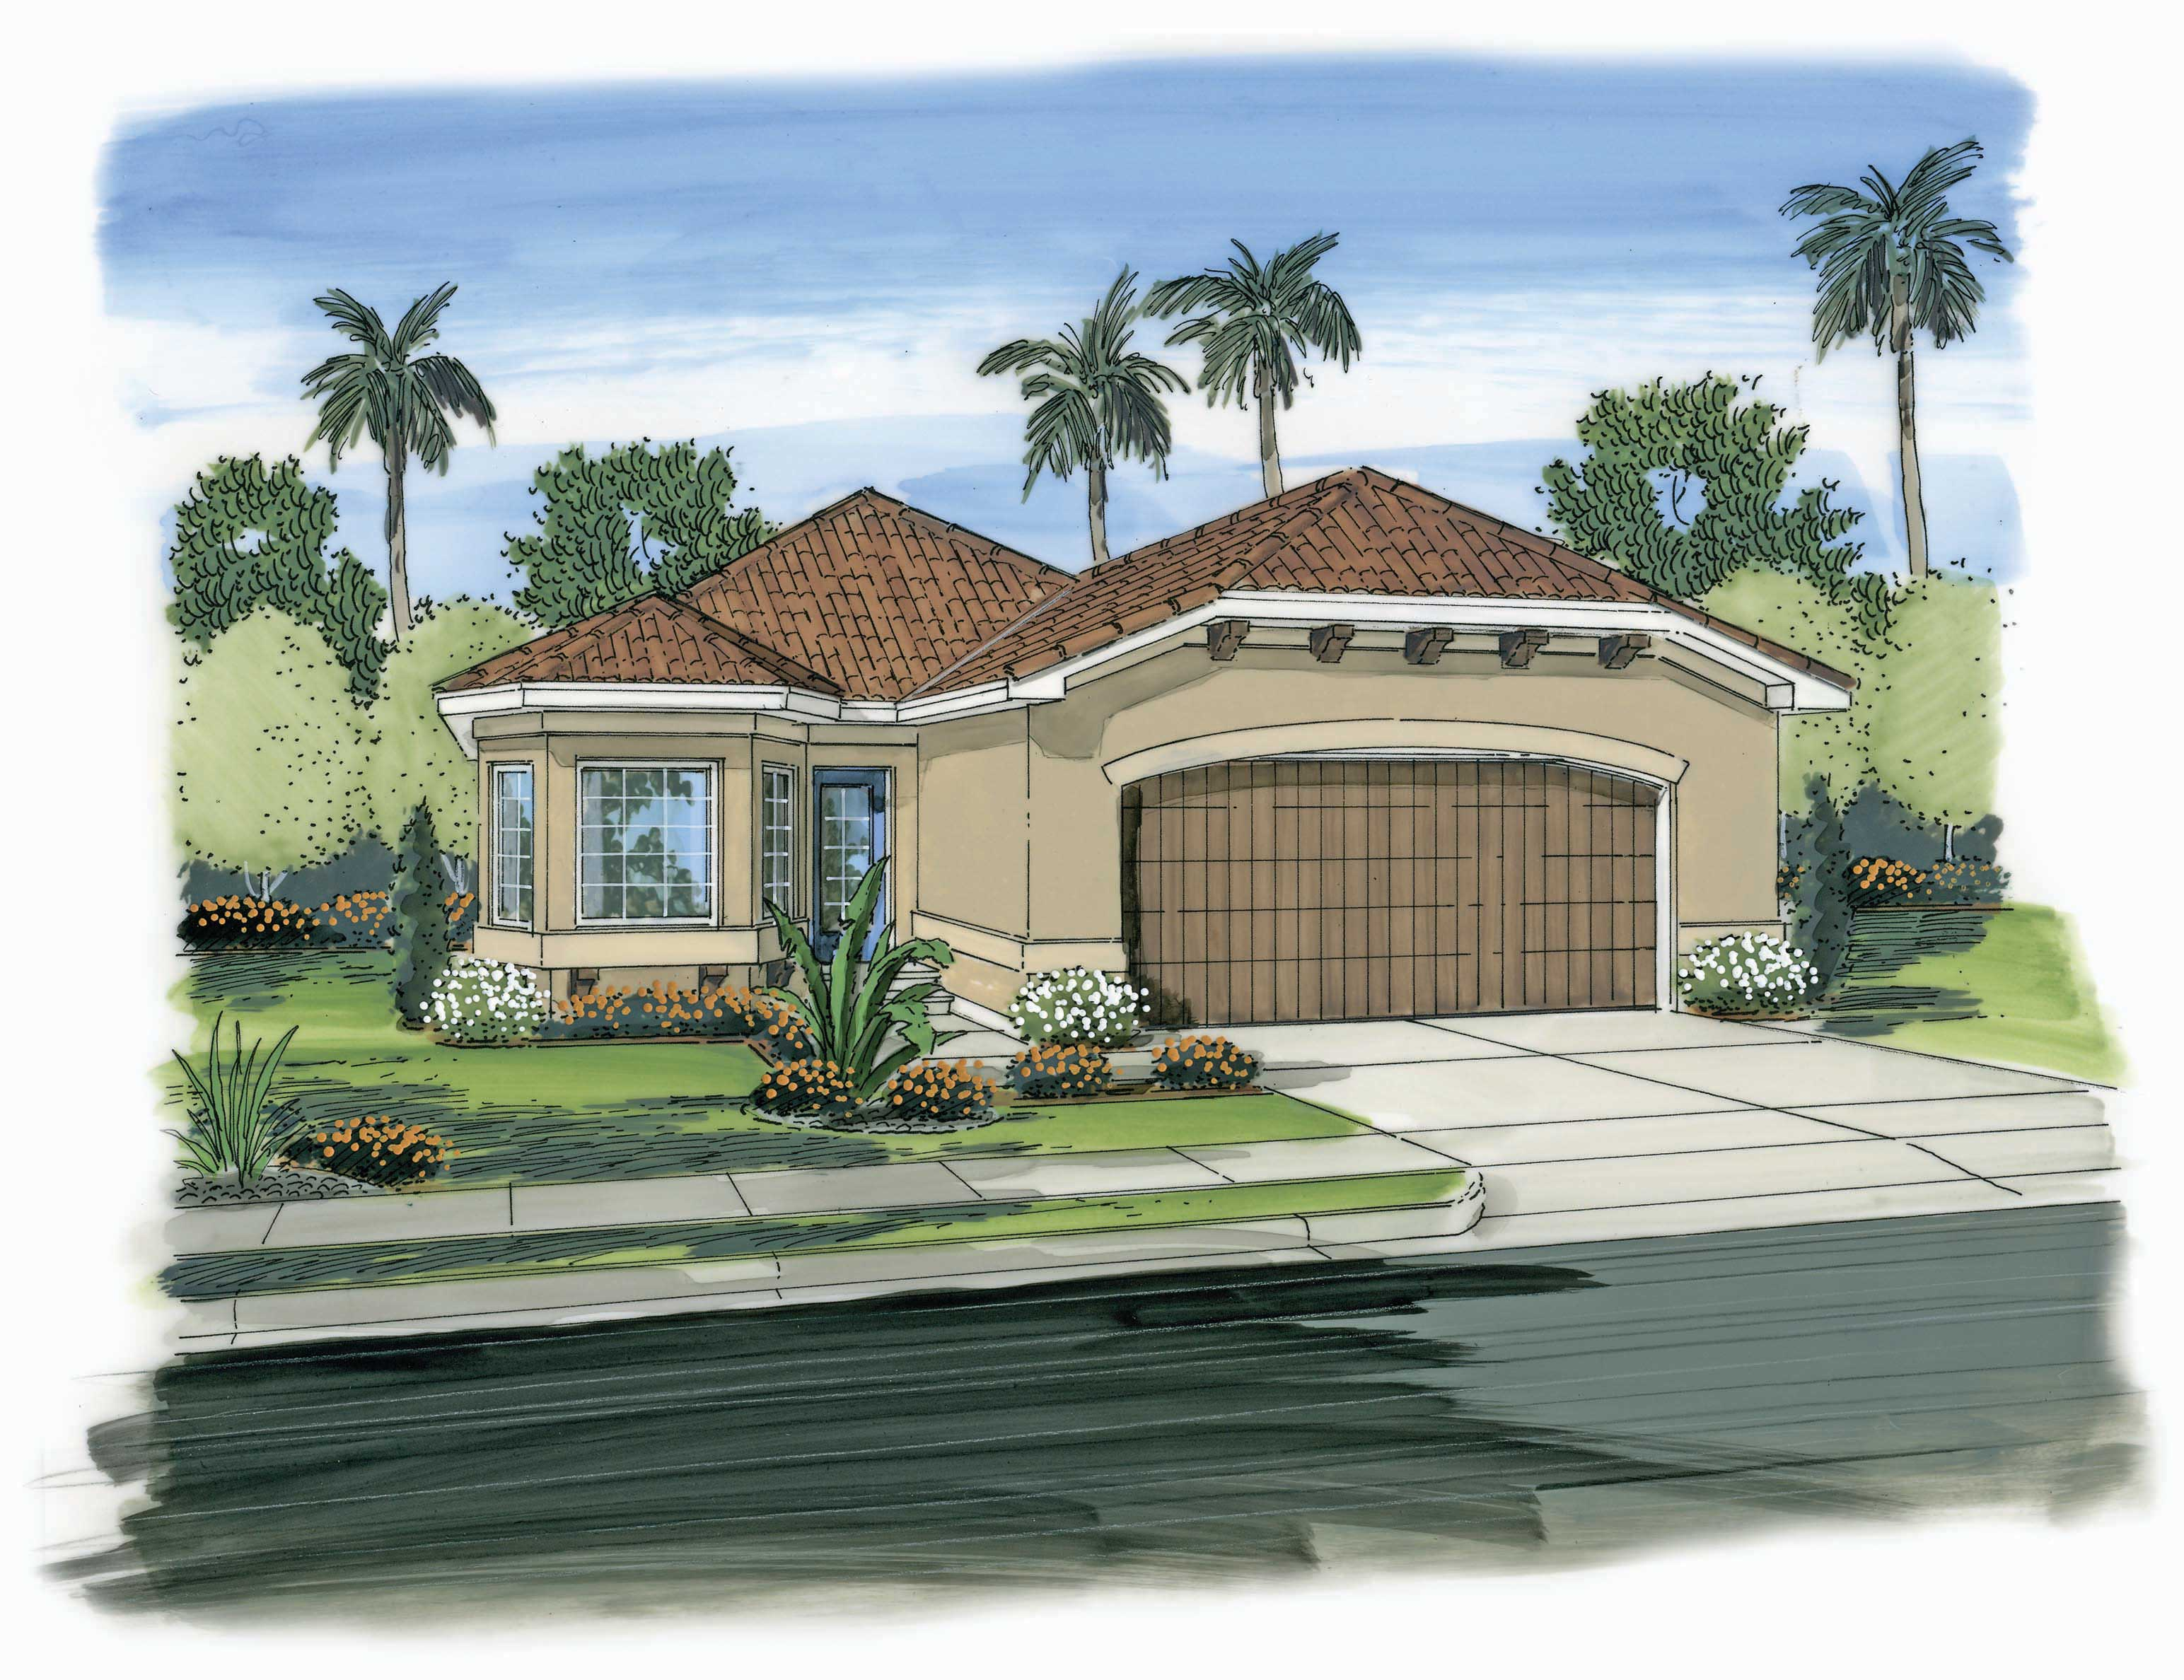 california plan plans sq ft mediterranean spanish floor homes southwest bedrooms houses story stucco bedroom garage theplancollection exterior paint 1177